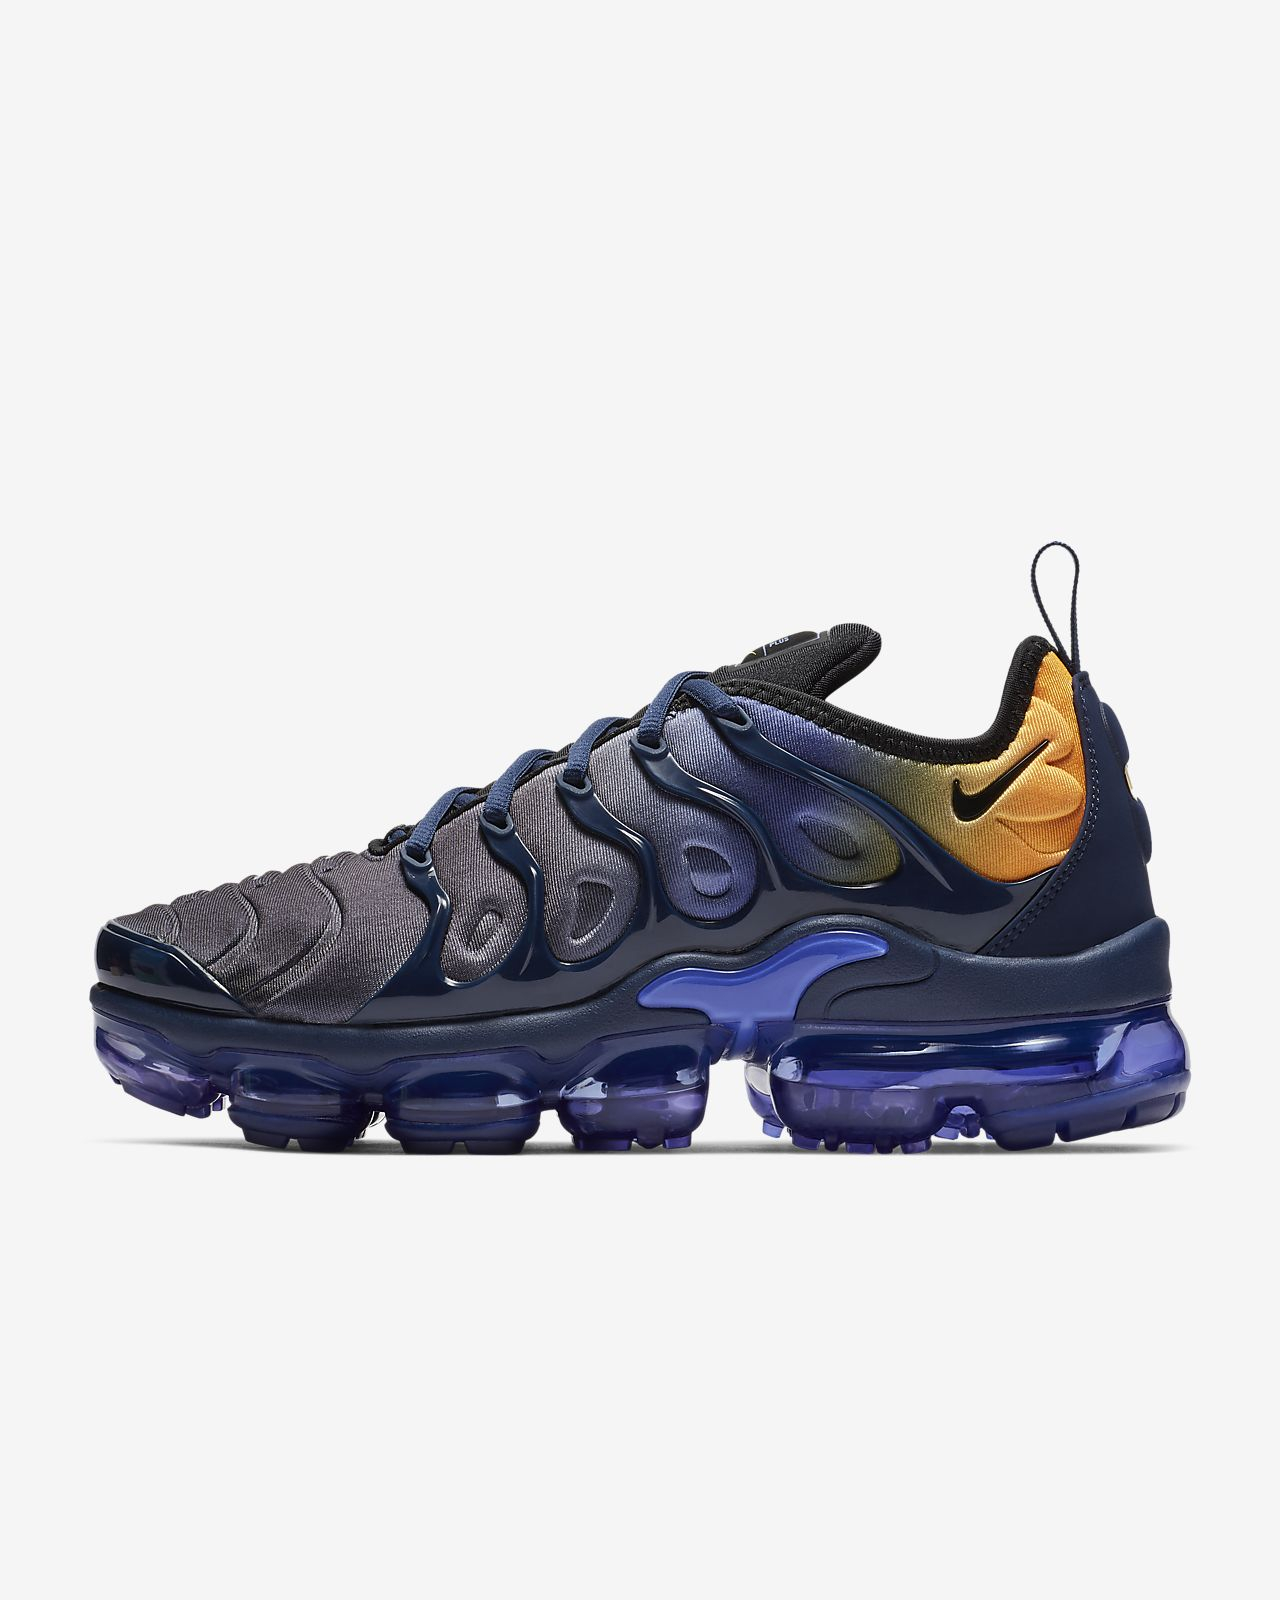 531c21b8364 Nike Air VaporMax Plus Women s Shoe. Nike.com